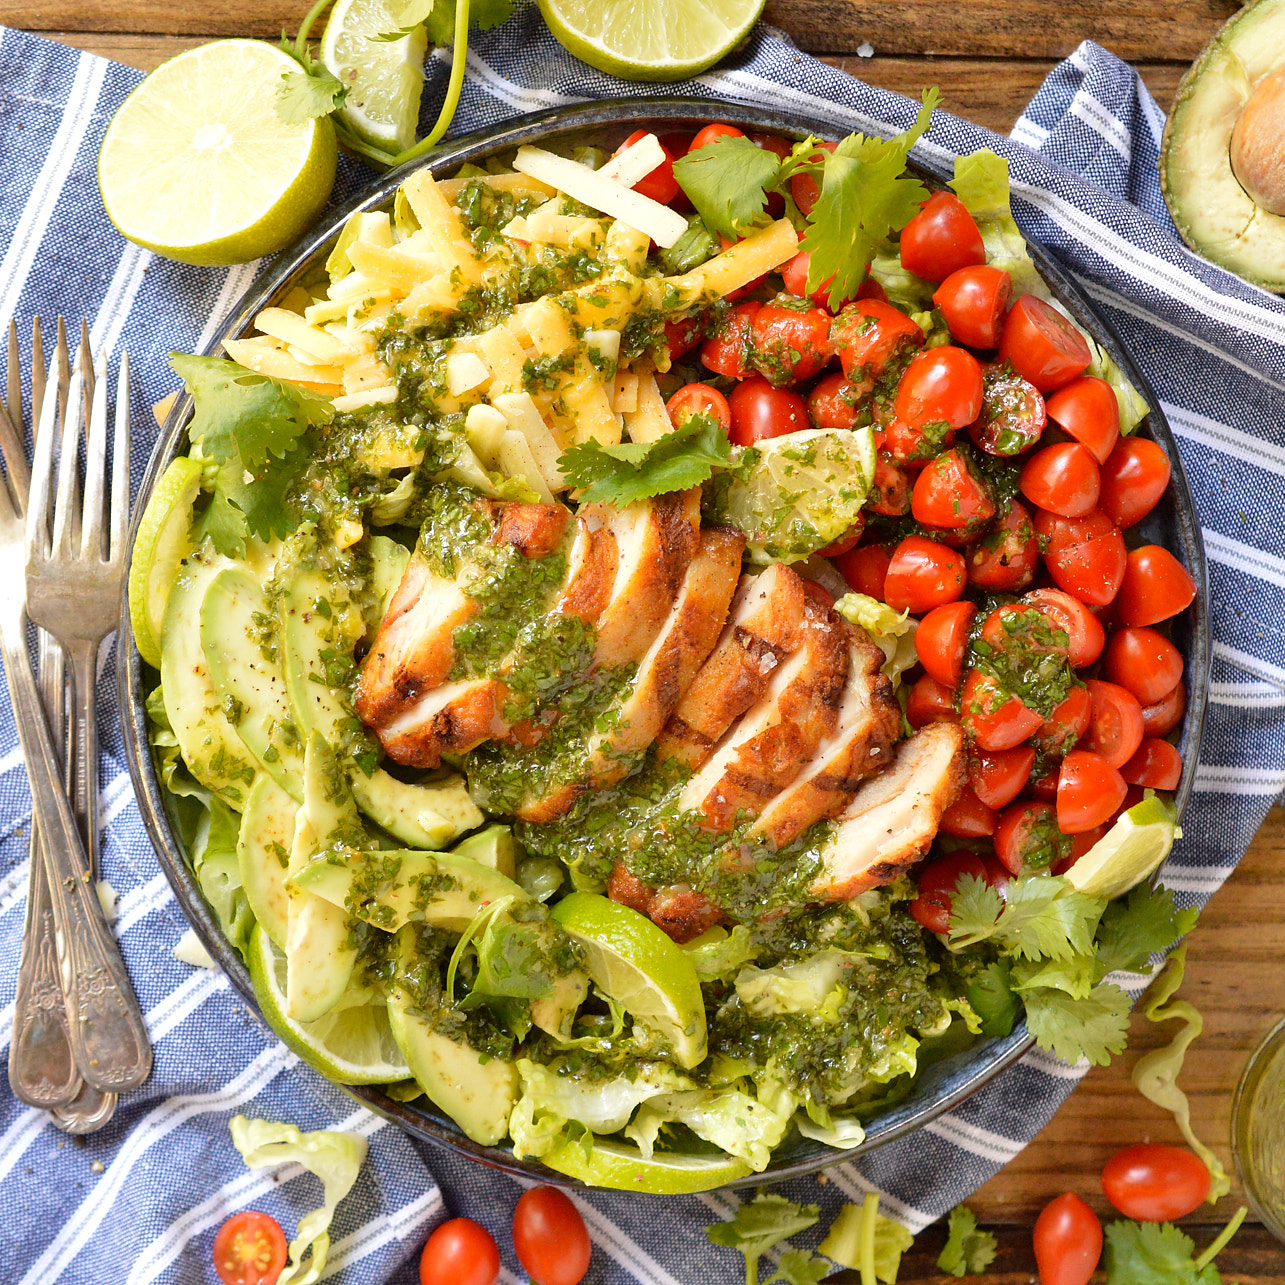 Arresting For A Easy Cilantro Lime Dressing Wonky Grilled Ken Salad Recipe Pinterest Grilled Ken Salad Recipe By Sanjeev Kapoor Nutritious Meal Look No Furr Than Thisgrilled Grilled Ken Salad nice food Grilled Chicken Salad Recipes